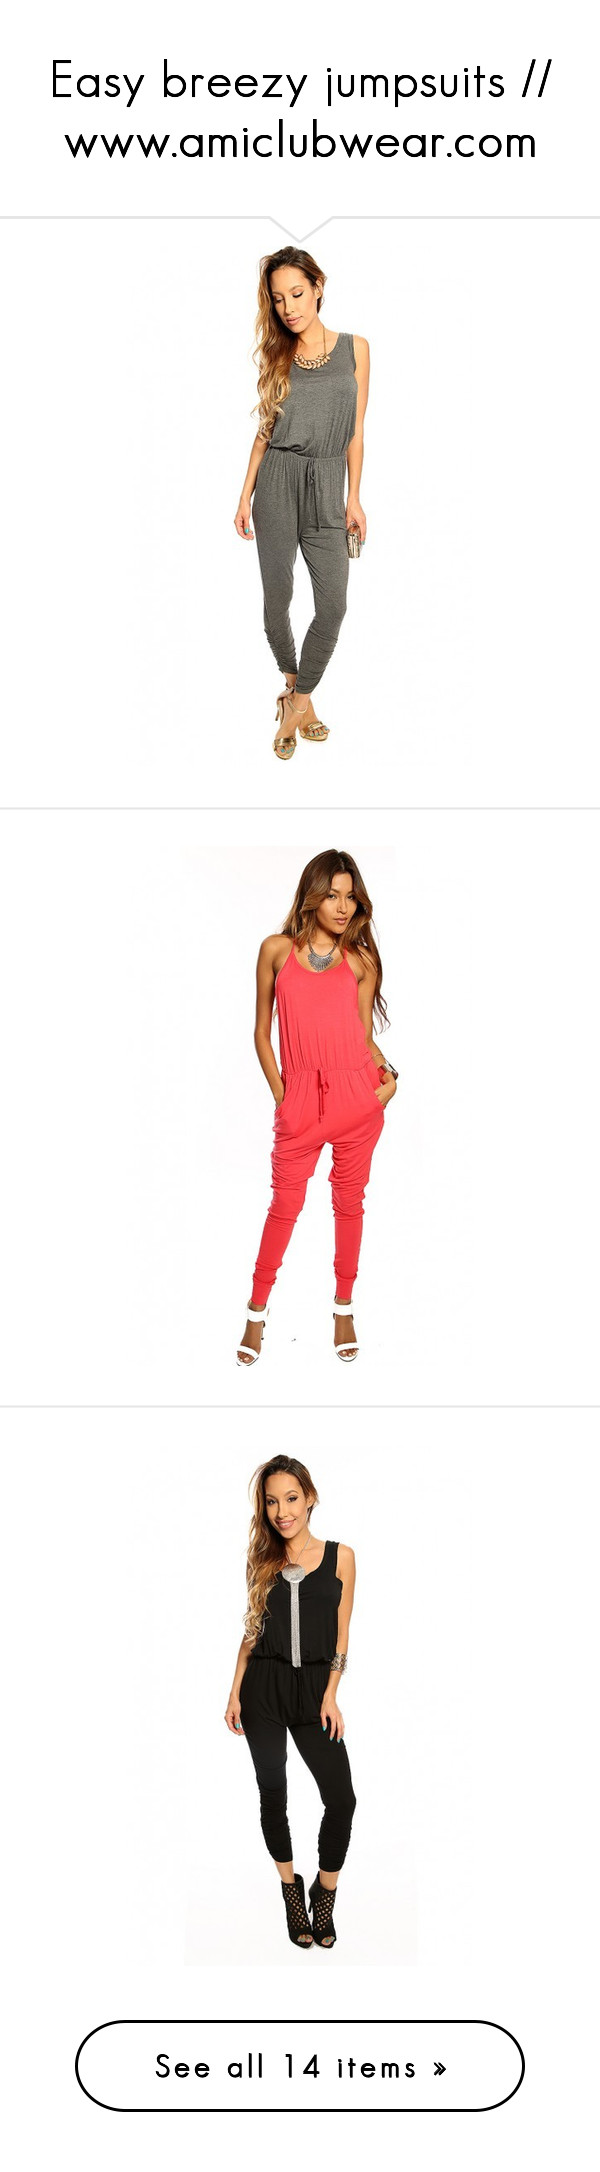 """Easy breezy jumpsuits // www.amiclubwear.com"" by amiclubwear ❤ liked on Polyvore featuring tops, shirred top, scoop neck top, white scoop neck top, retro crop top, white top, jumpsuits, jump suit, white jumpsuit and coral jumpsuit"